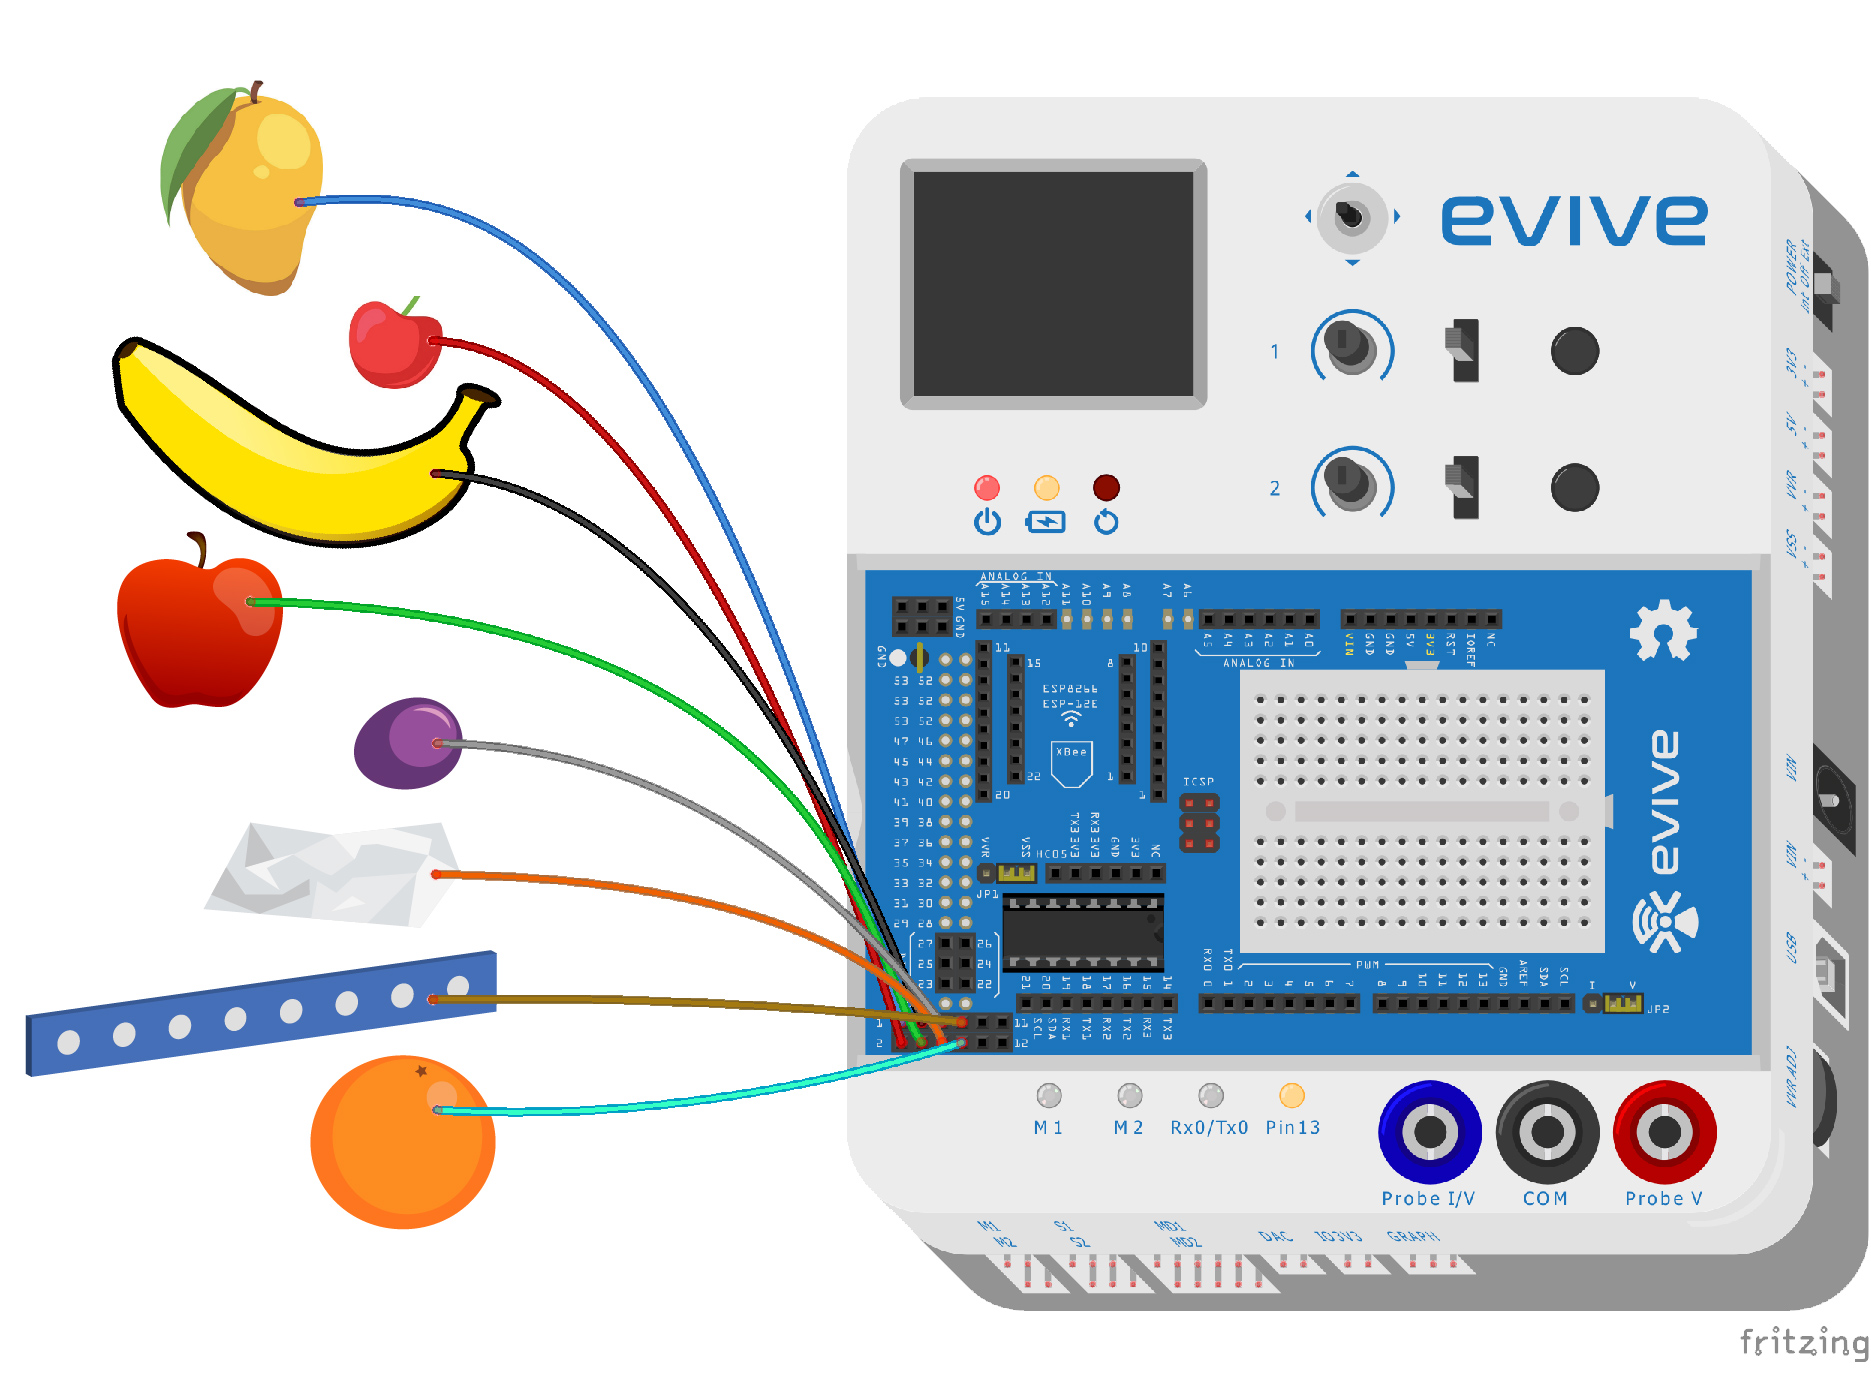 Capacitive Touch With Evive Arduino Based Controller How To Build Simple Sensor Circuit Diagram Bb Wkaswlc8u8